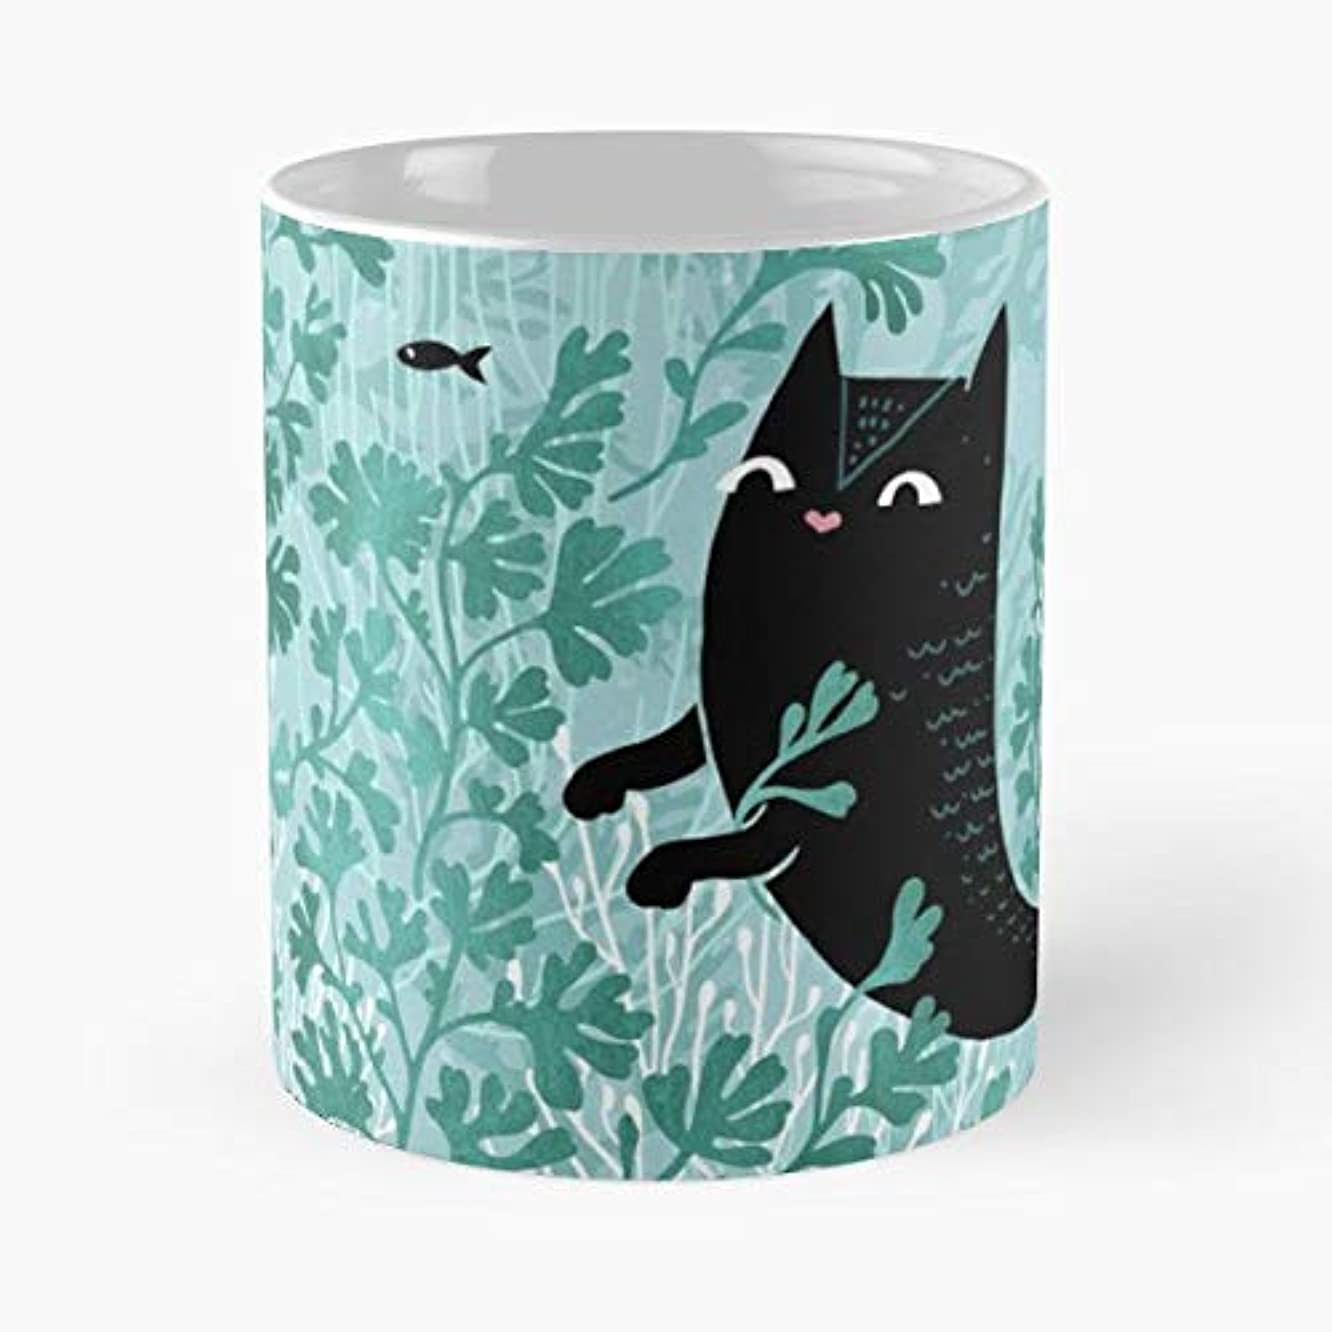 Cat Feline Mermaid Mercat - Funny Gifts For Men And Women Gift Coffee Mug Tea Cup White-11 Oz.